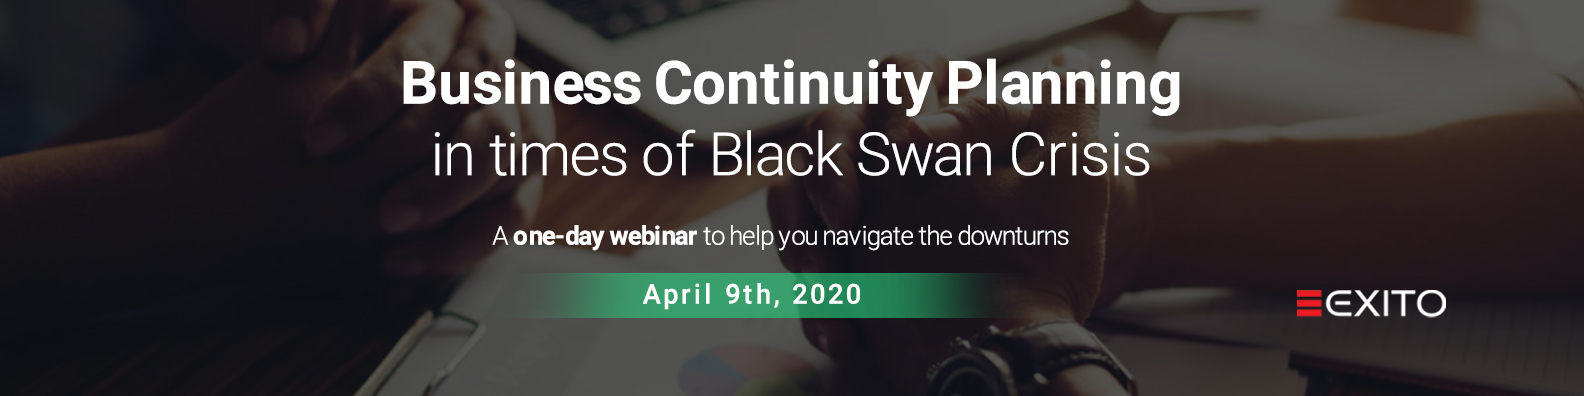 Business Continuity Planning Webinar